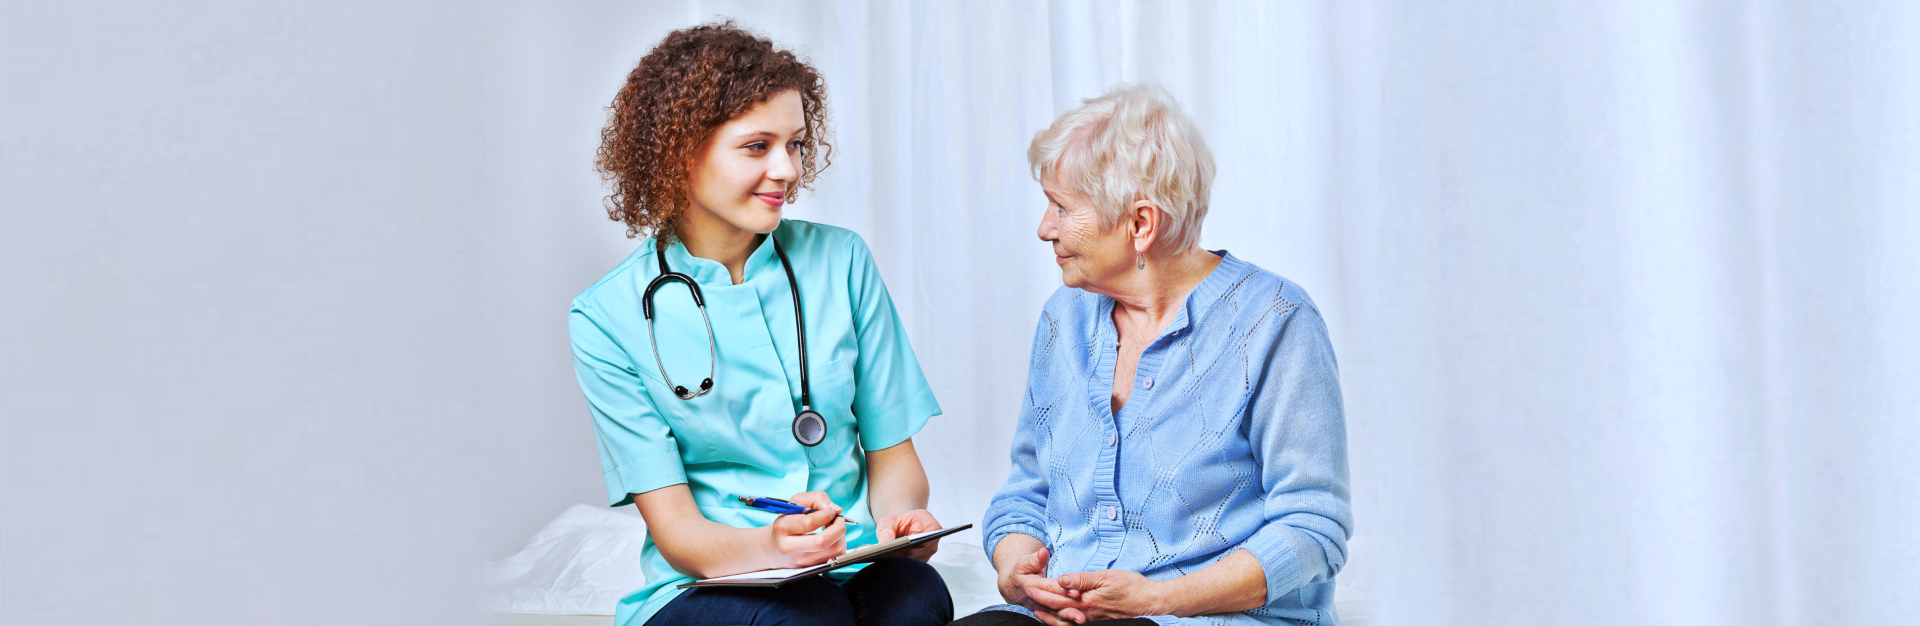 caregiver and senior woman talking